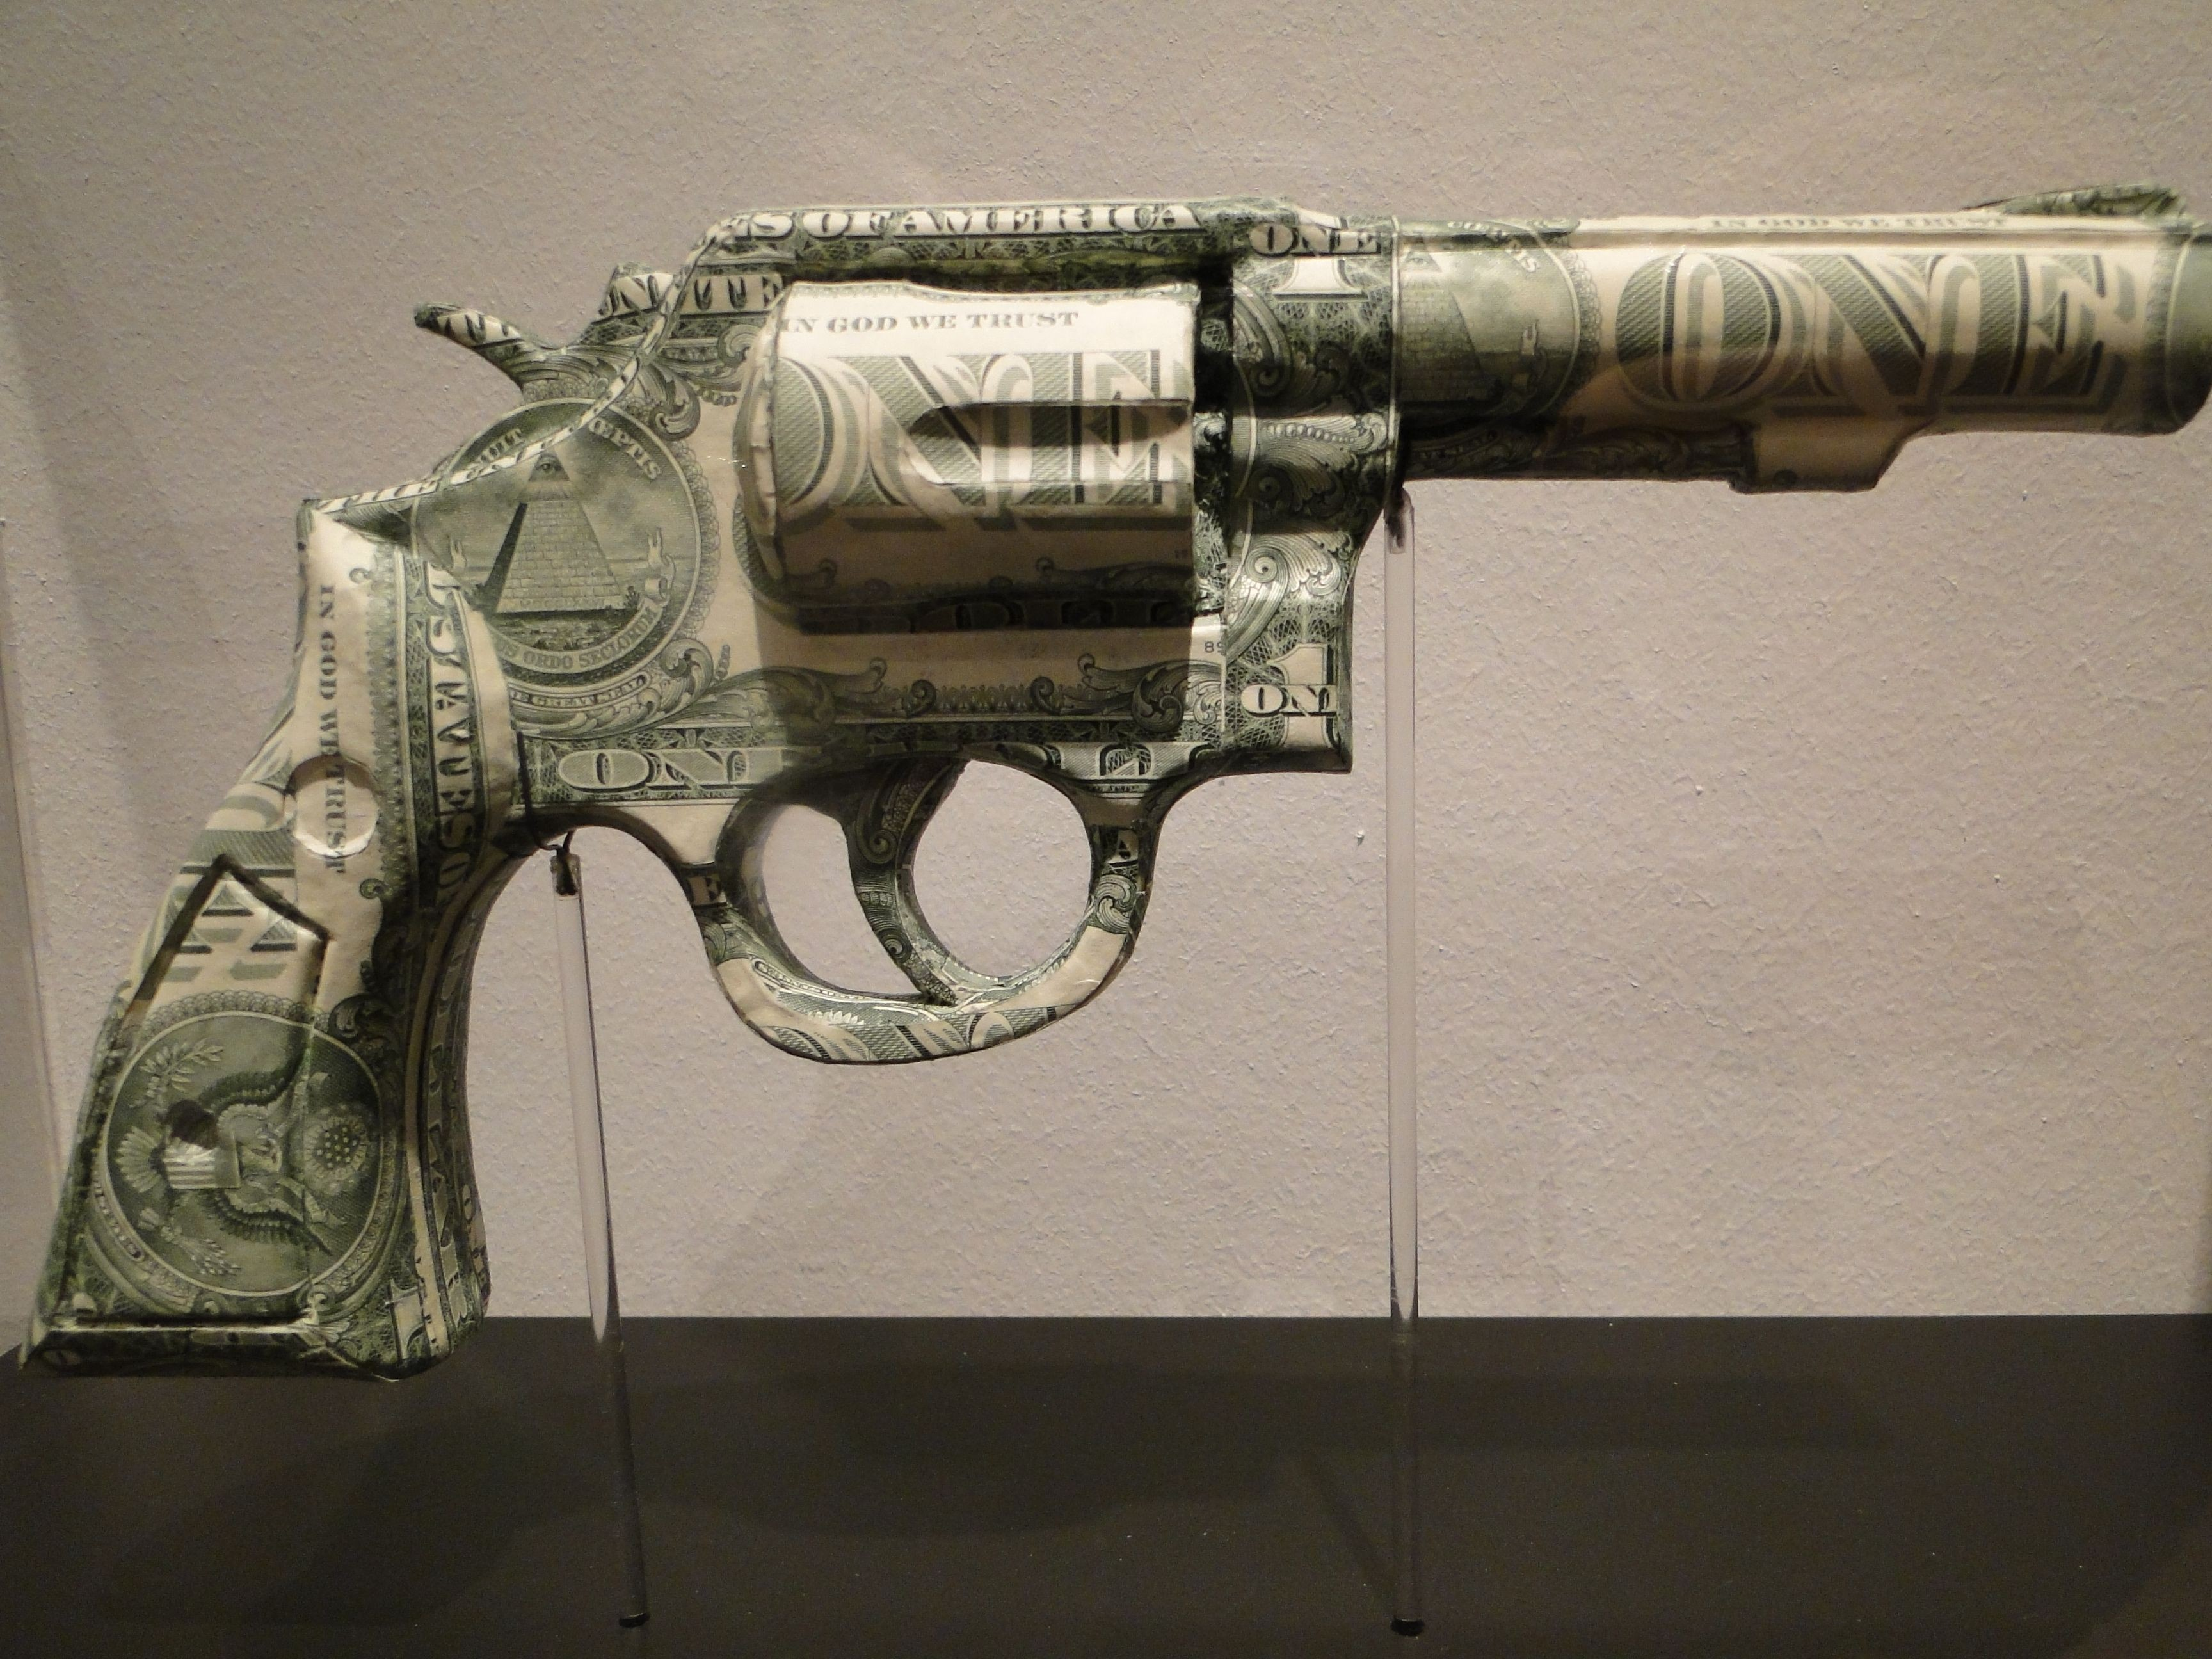 Papercraft Revolver the Judge 2011 by Justine Smith